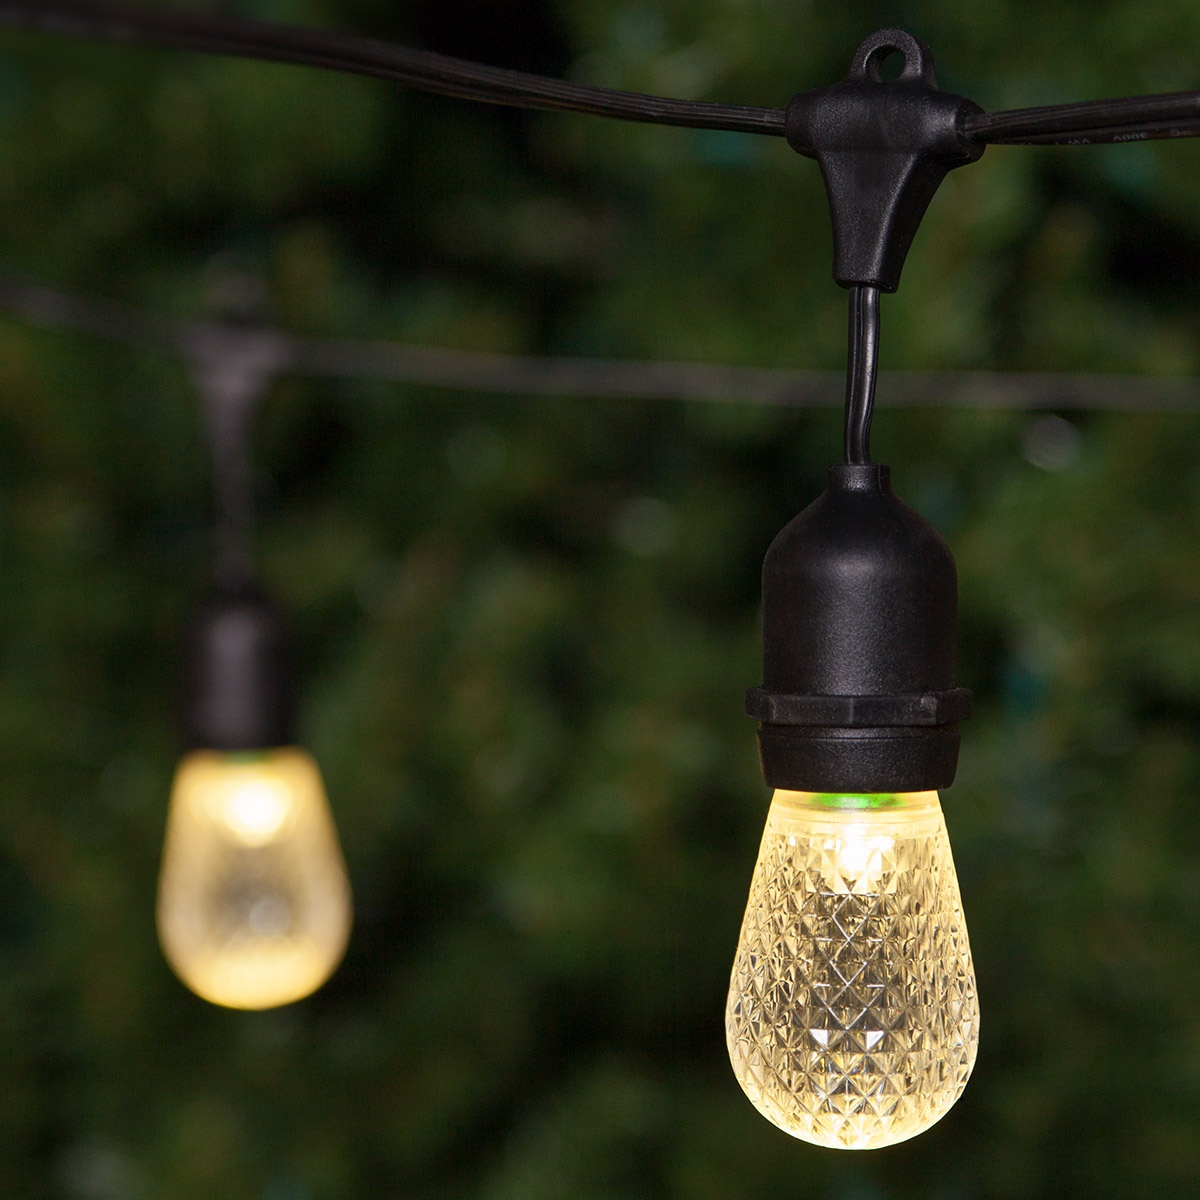 Commercial Patio String Lights Warm White S14 Led Bulbs